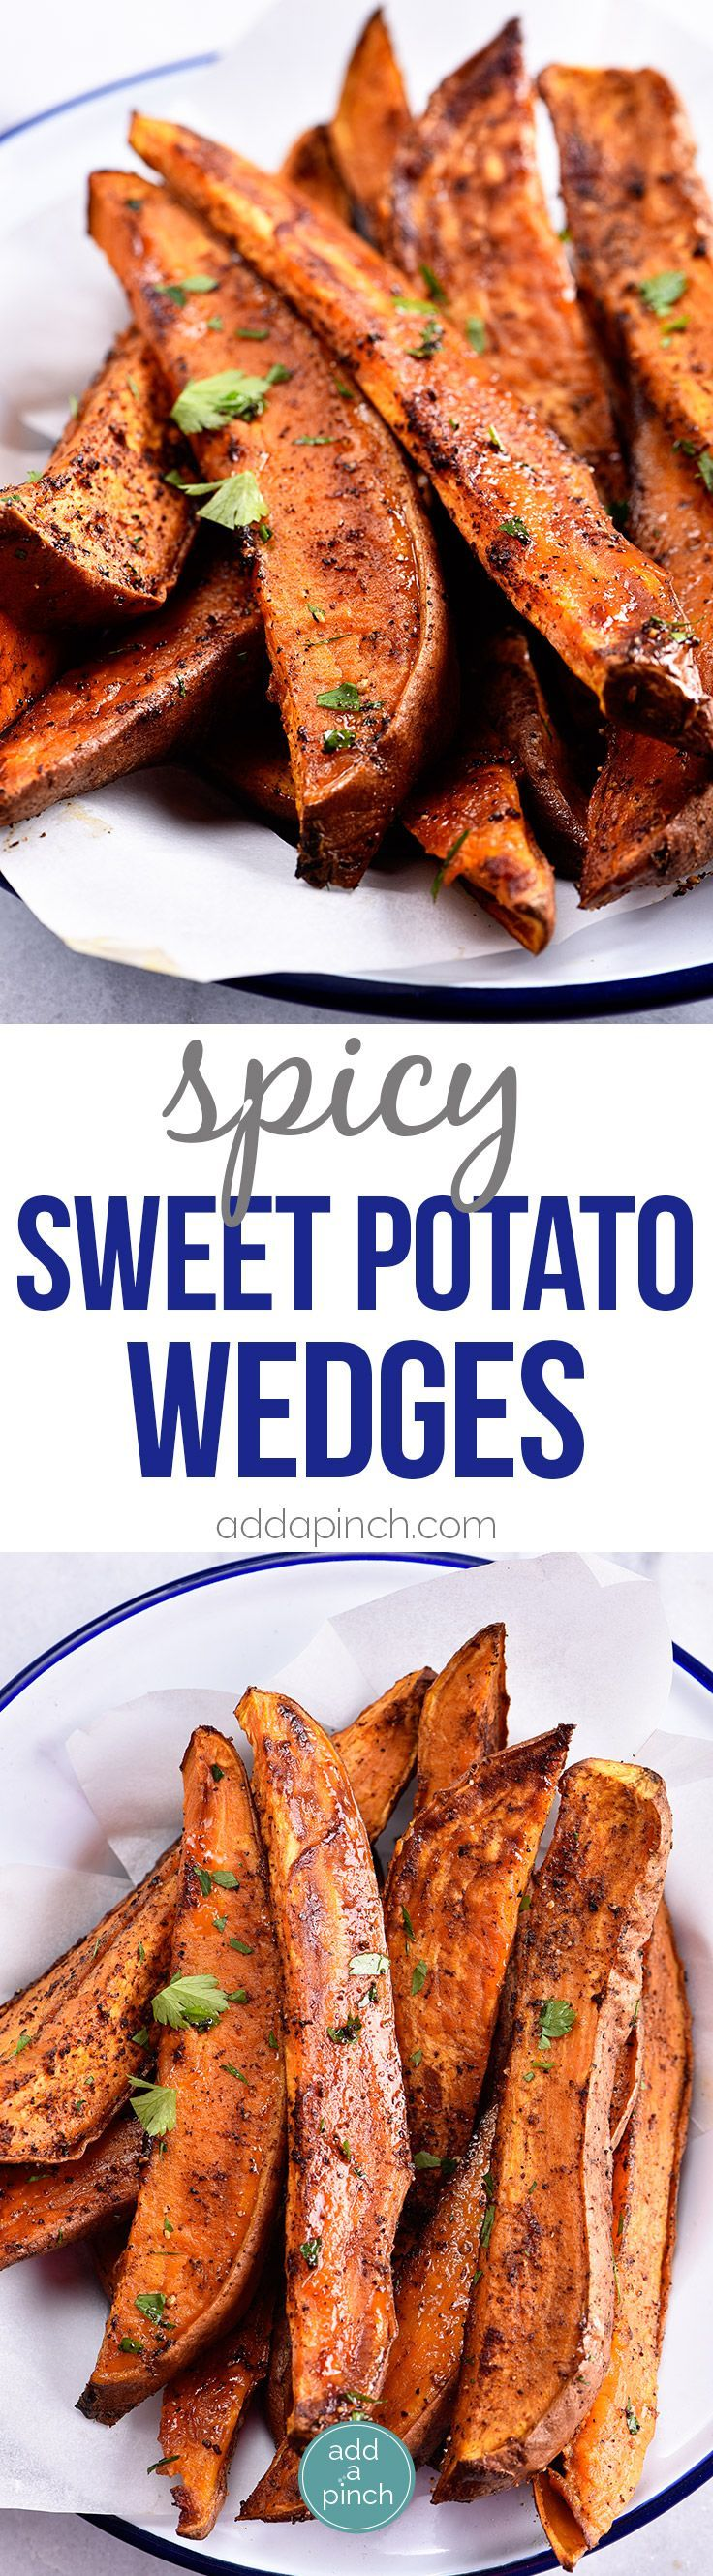 Spicy Sweet Potato Wedges Recipe - Spicy Roasted Sweet Potato Wedges make an easy and delicious recipe! Made with just five ingredients, these roasted sweet potatoes will definitely become a favorite! // http://addapinch.com